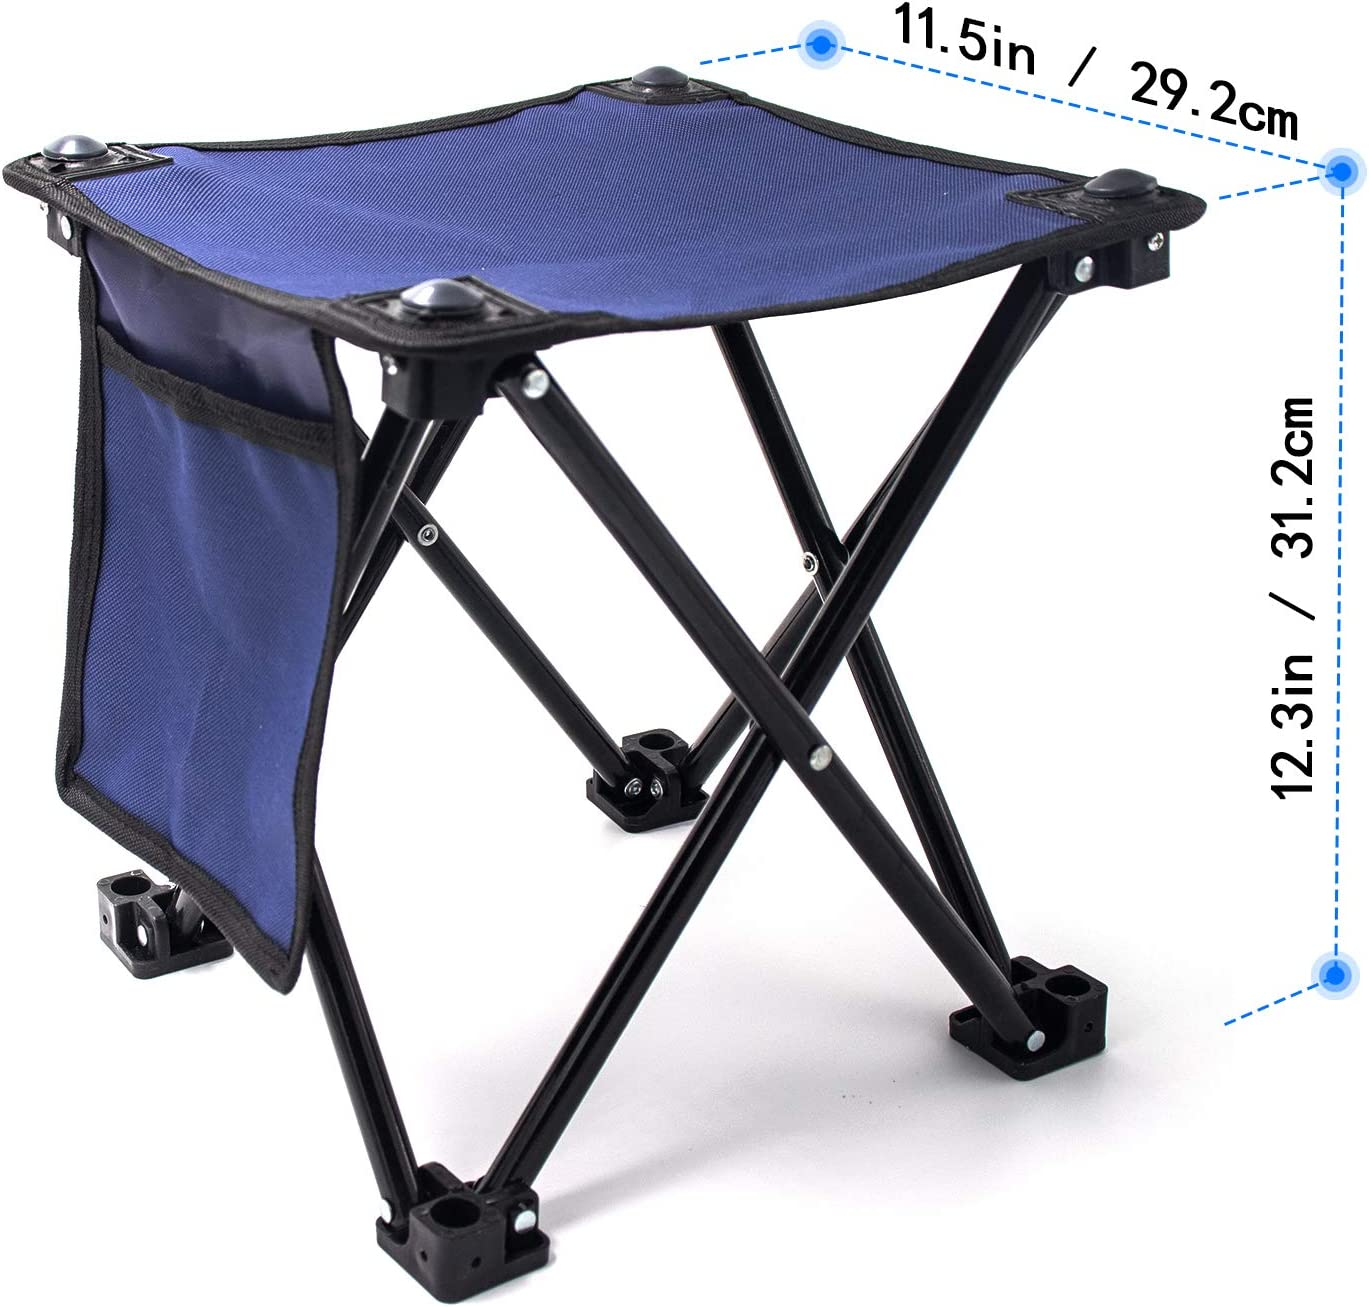 Small Folding Camping Stool, Portable Rest Seat Collapsible Slacker Stool for Outdoor Camping Walking Hunting Hiking Fishing Travel Beach Garden BBQ, Metal 600D Oxford Cloth with Carry Bag, Blue